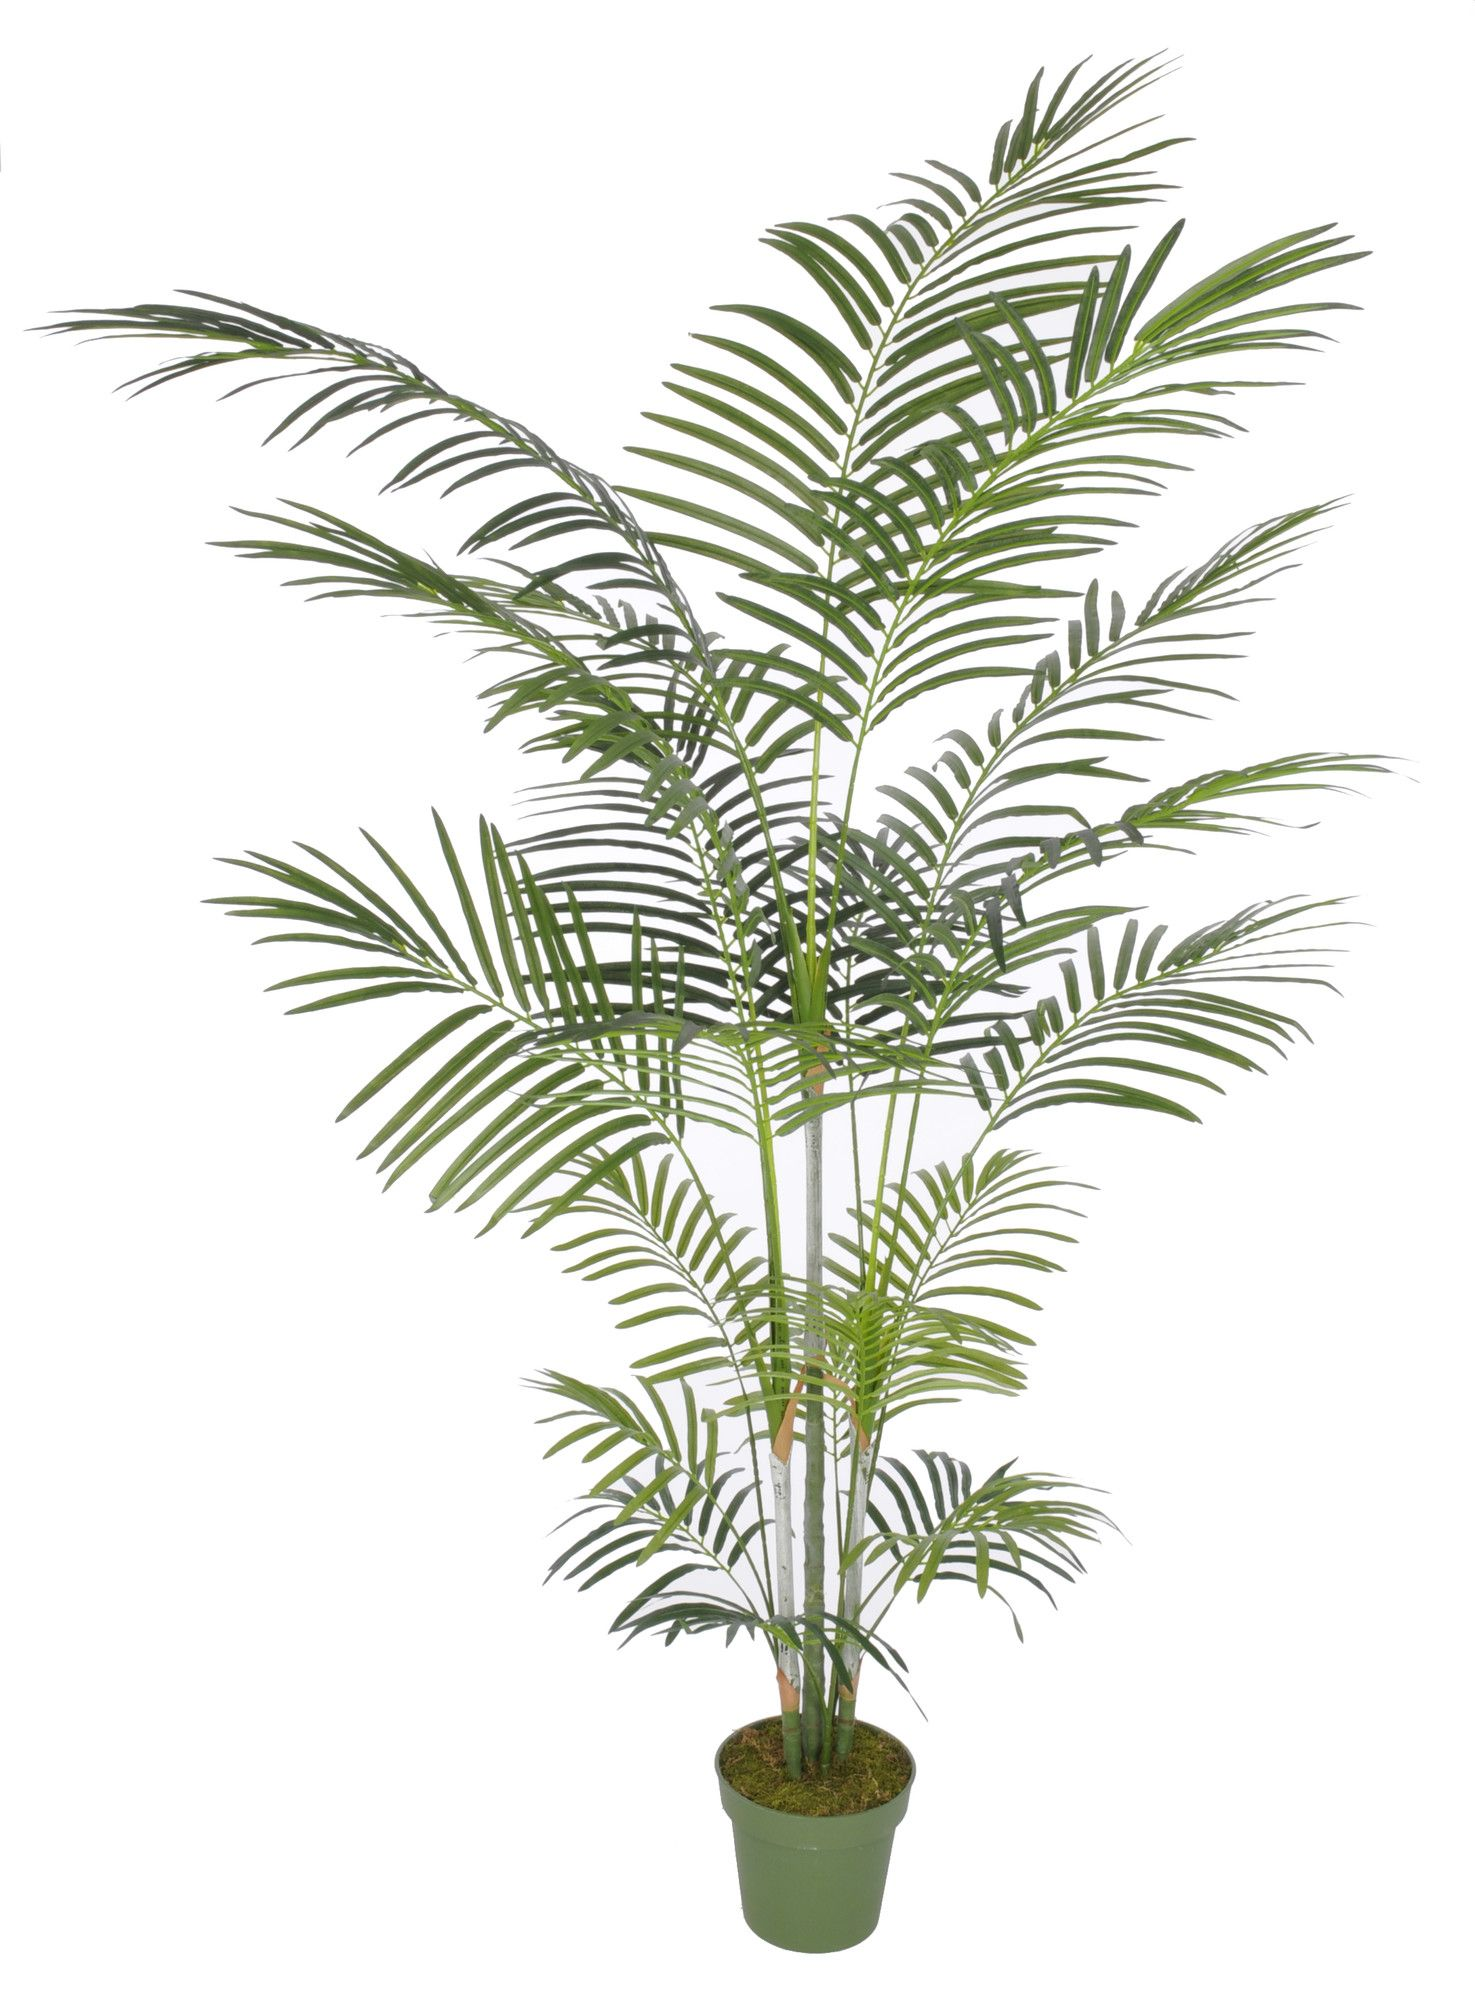 House of silk flowers artificial areca palm tree reviews house of silk flowers artificial areca palm tree reviews wayfair dhlflorist Gallery